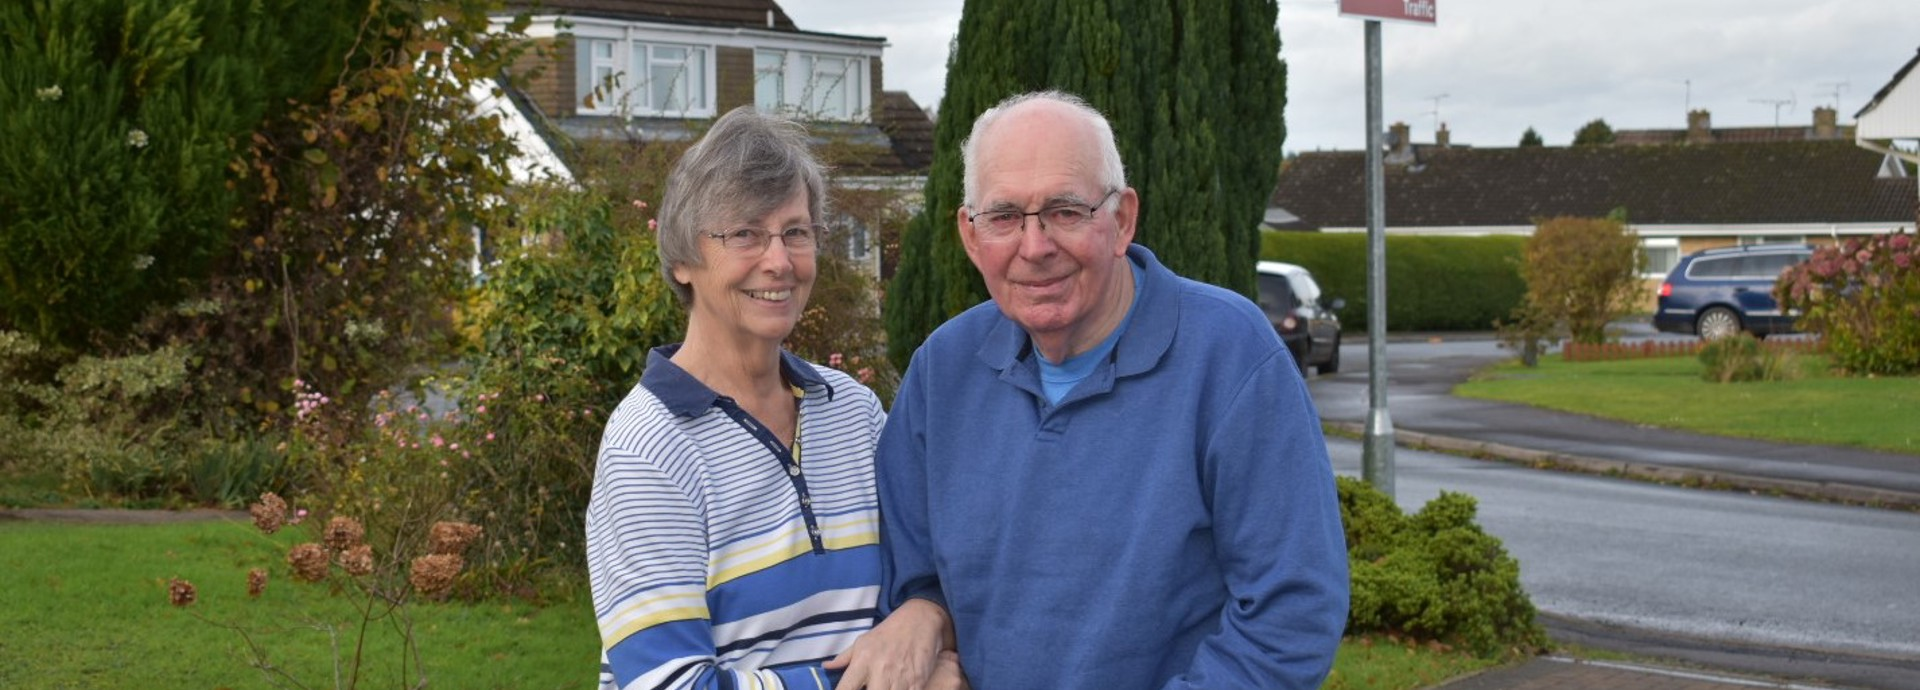 Sue and Brian Burgess outside their home